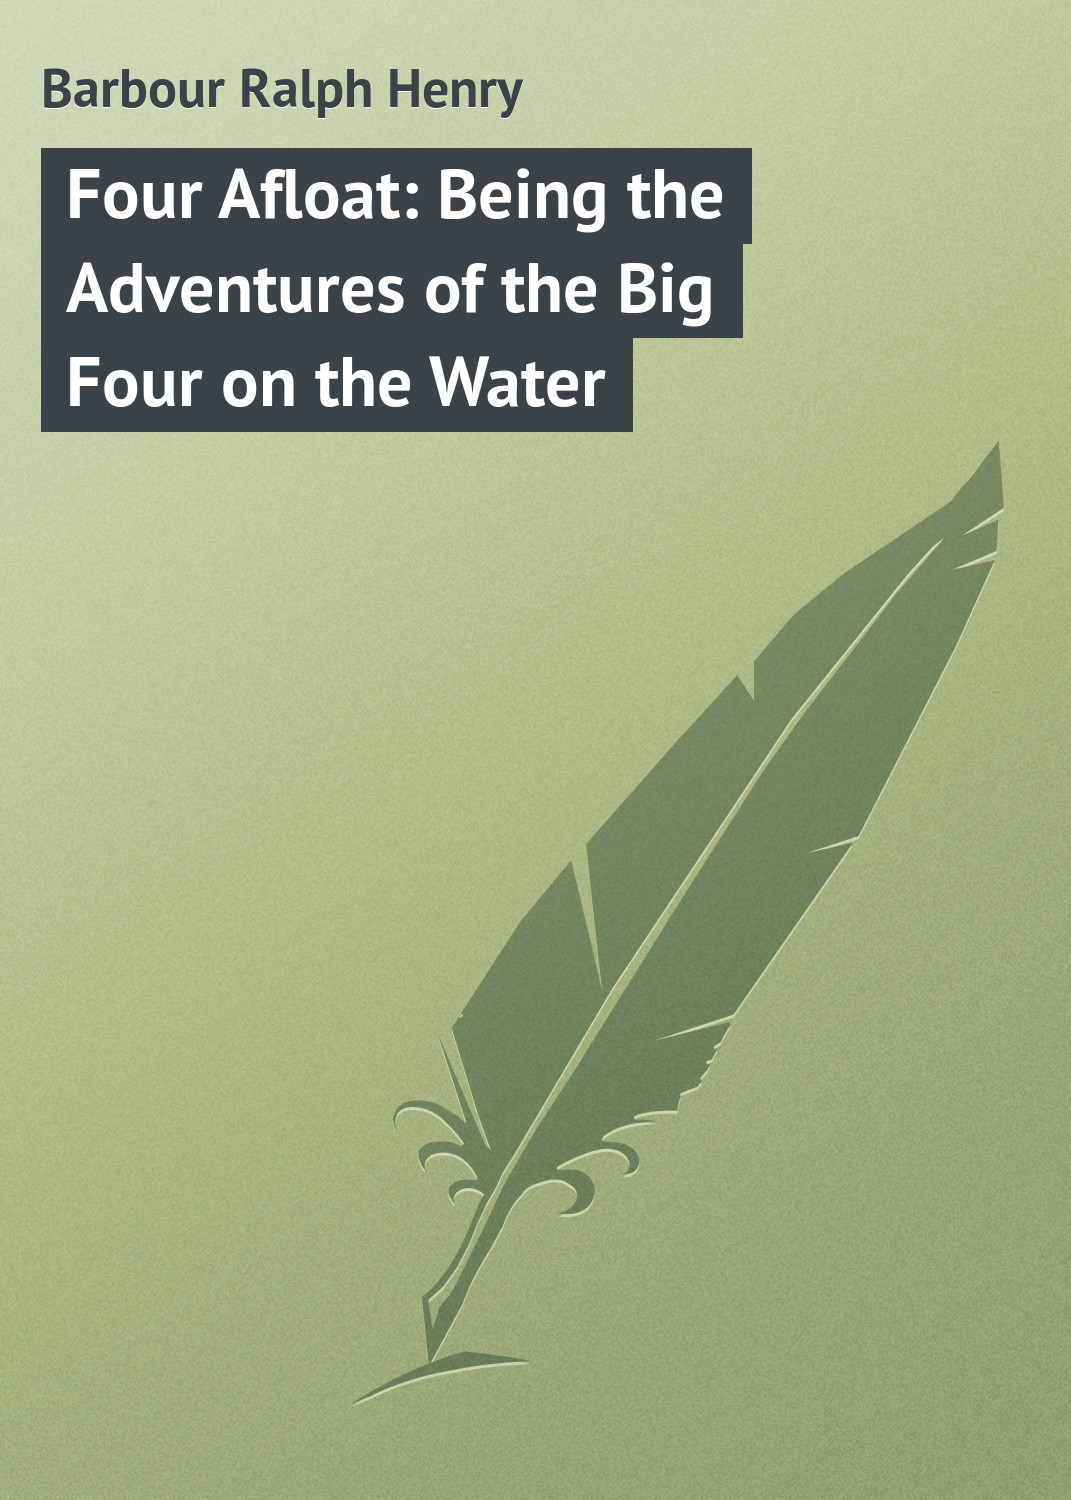 Barbour Ralph Henry Four Afloat: Being the Adventures of the Big Four on the Water